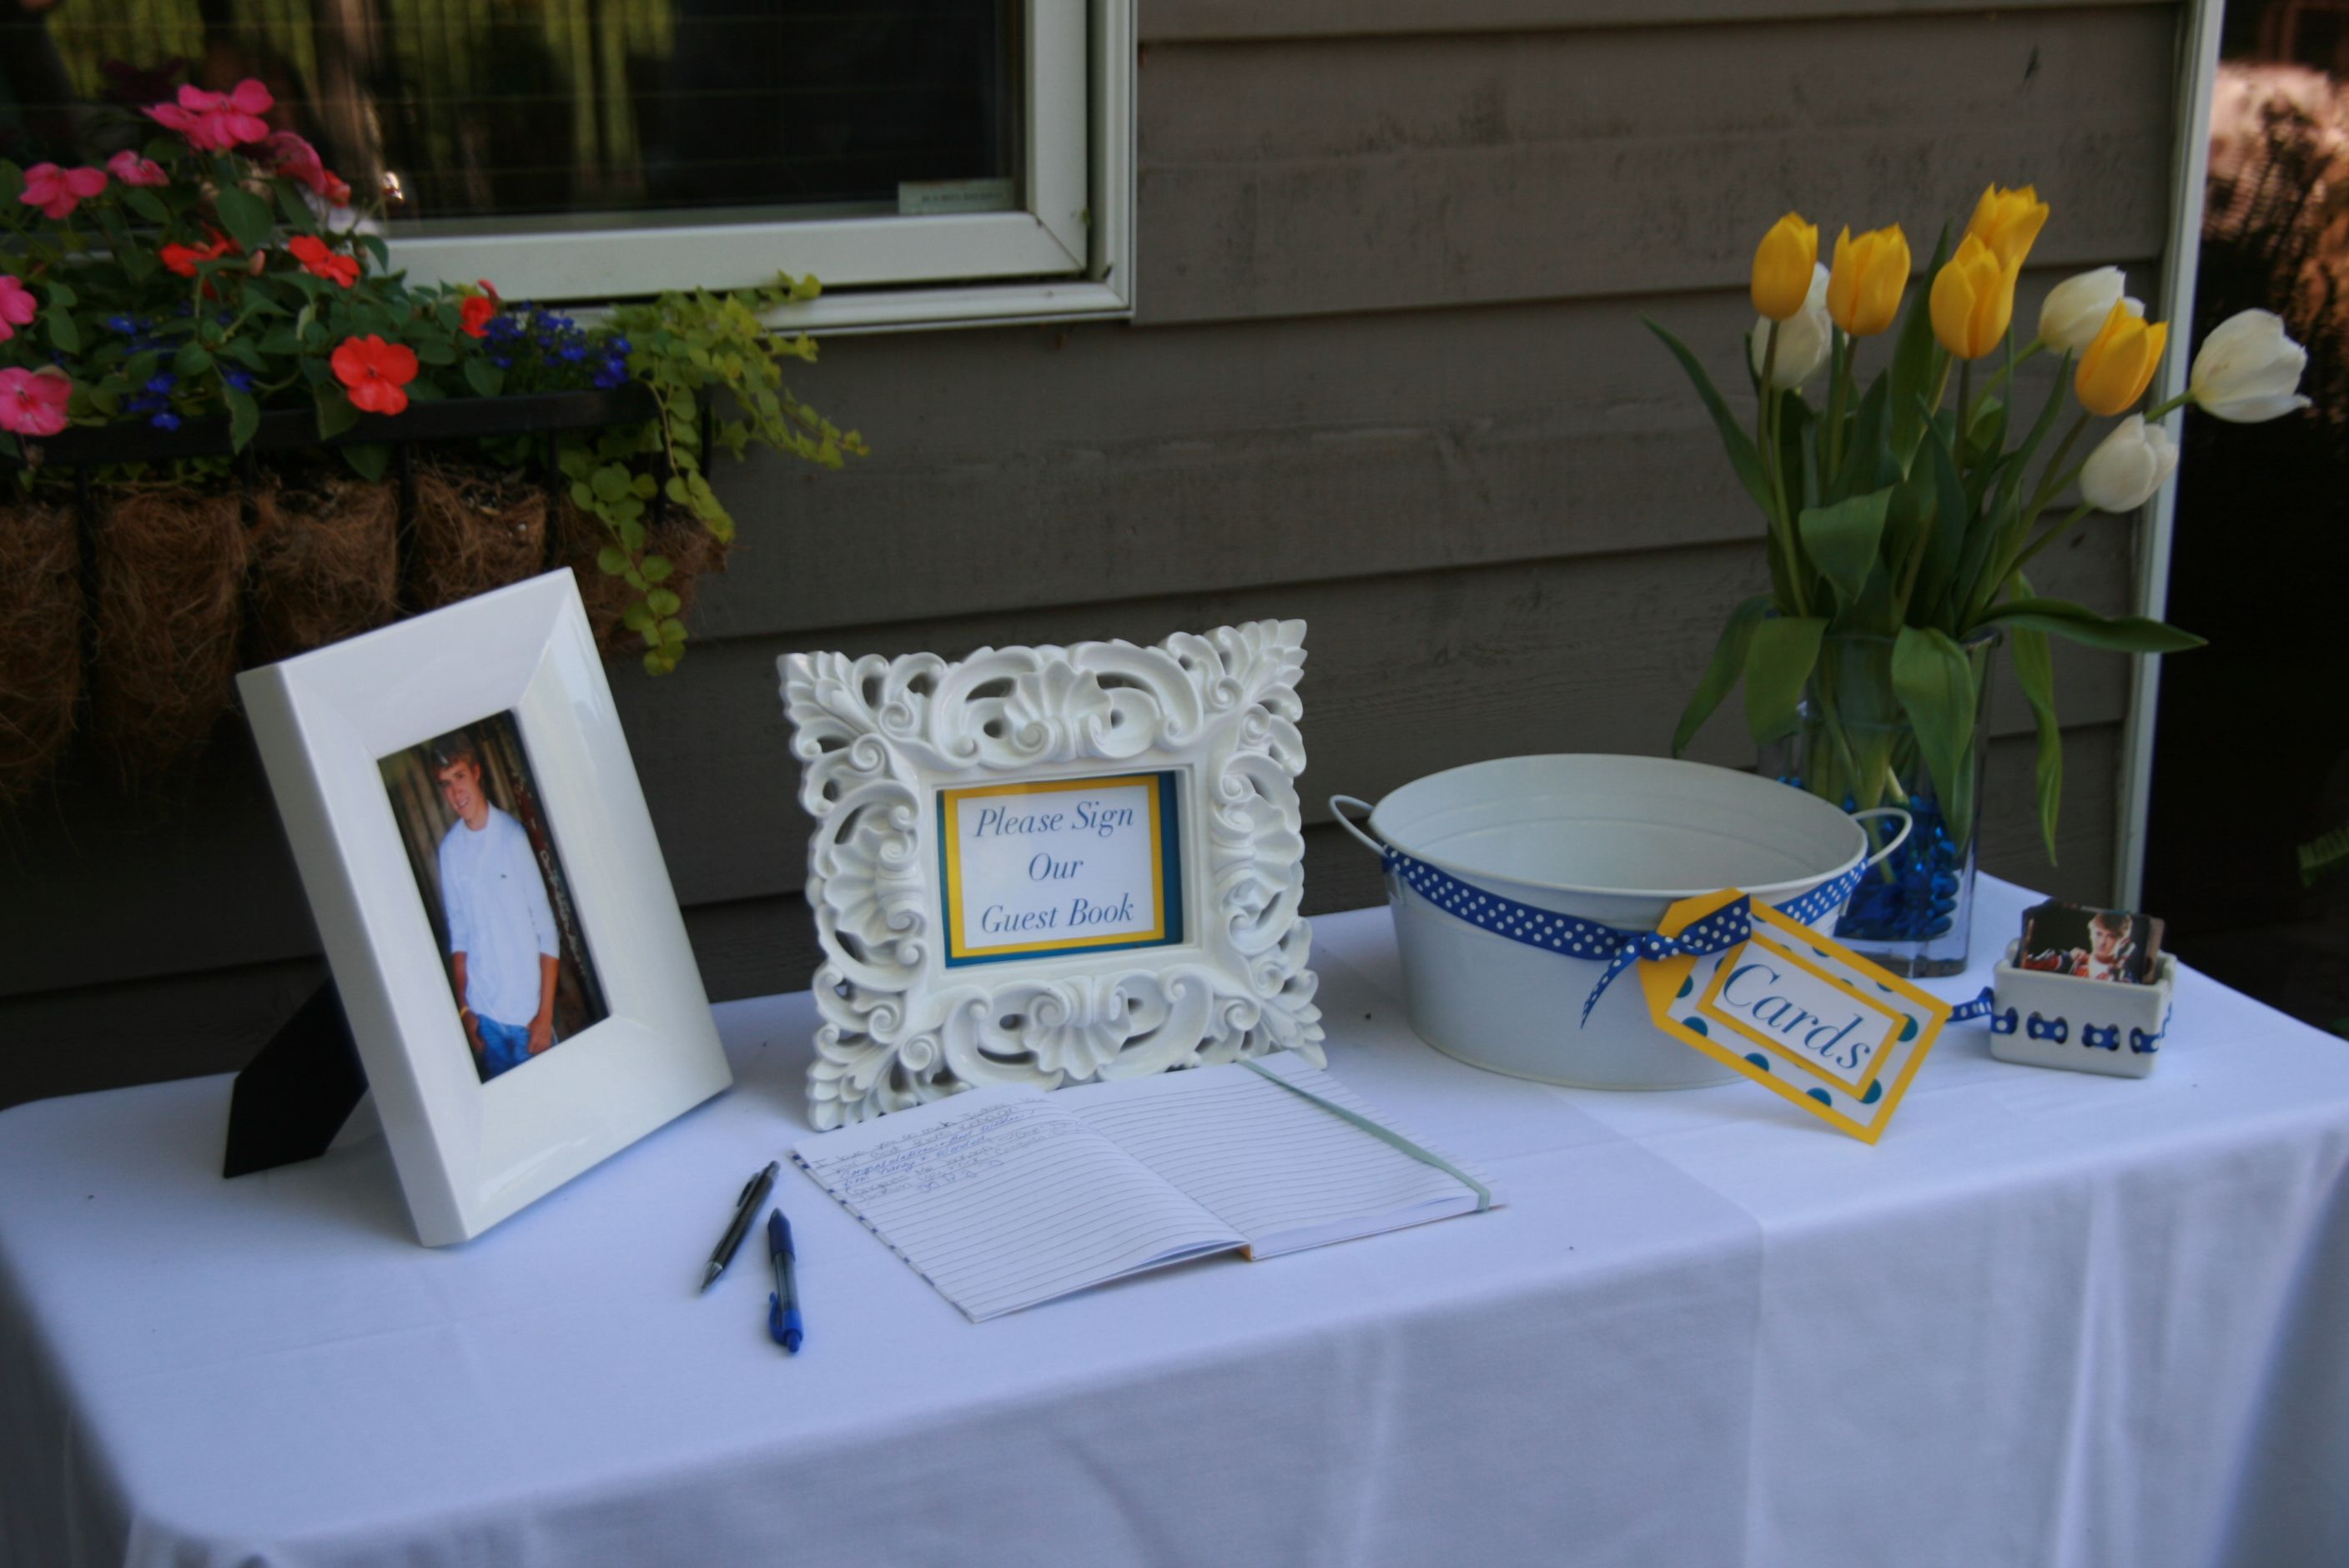 Graduation Table Ideas high school graduation table decorations graduation party ideas photo gallery graduation party ideas Graduation Guest Book Table